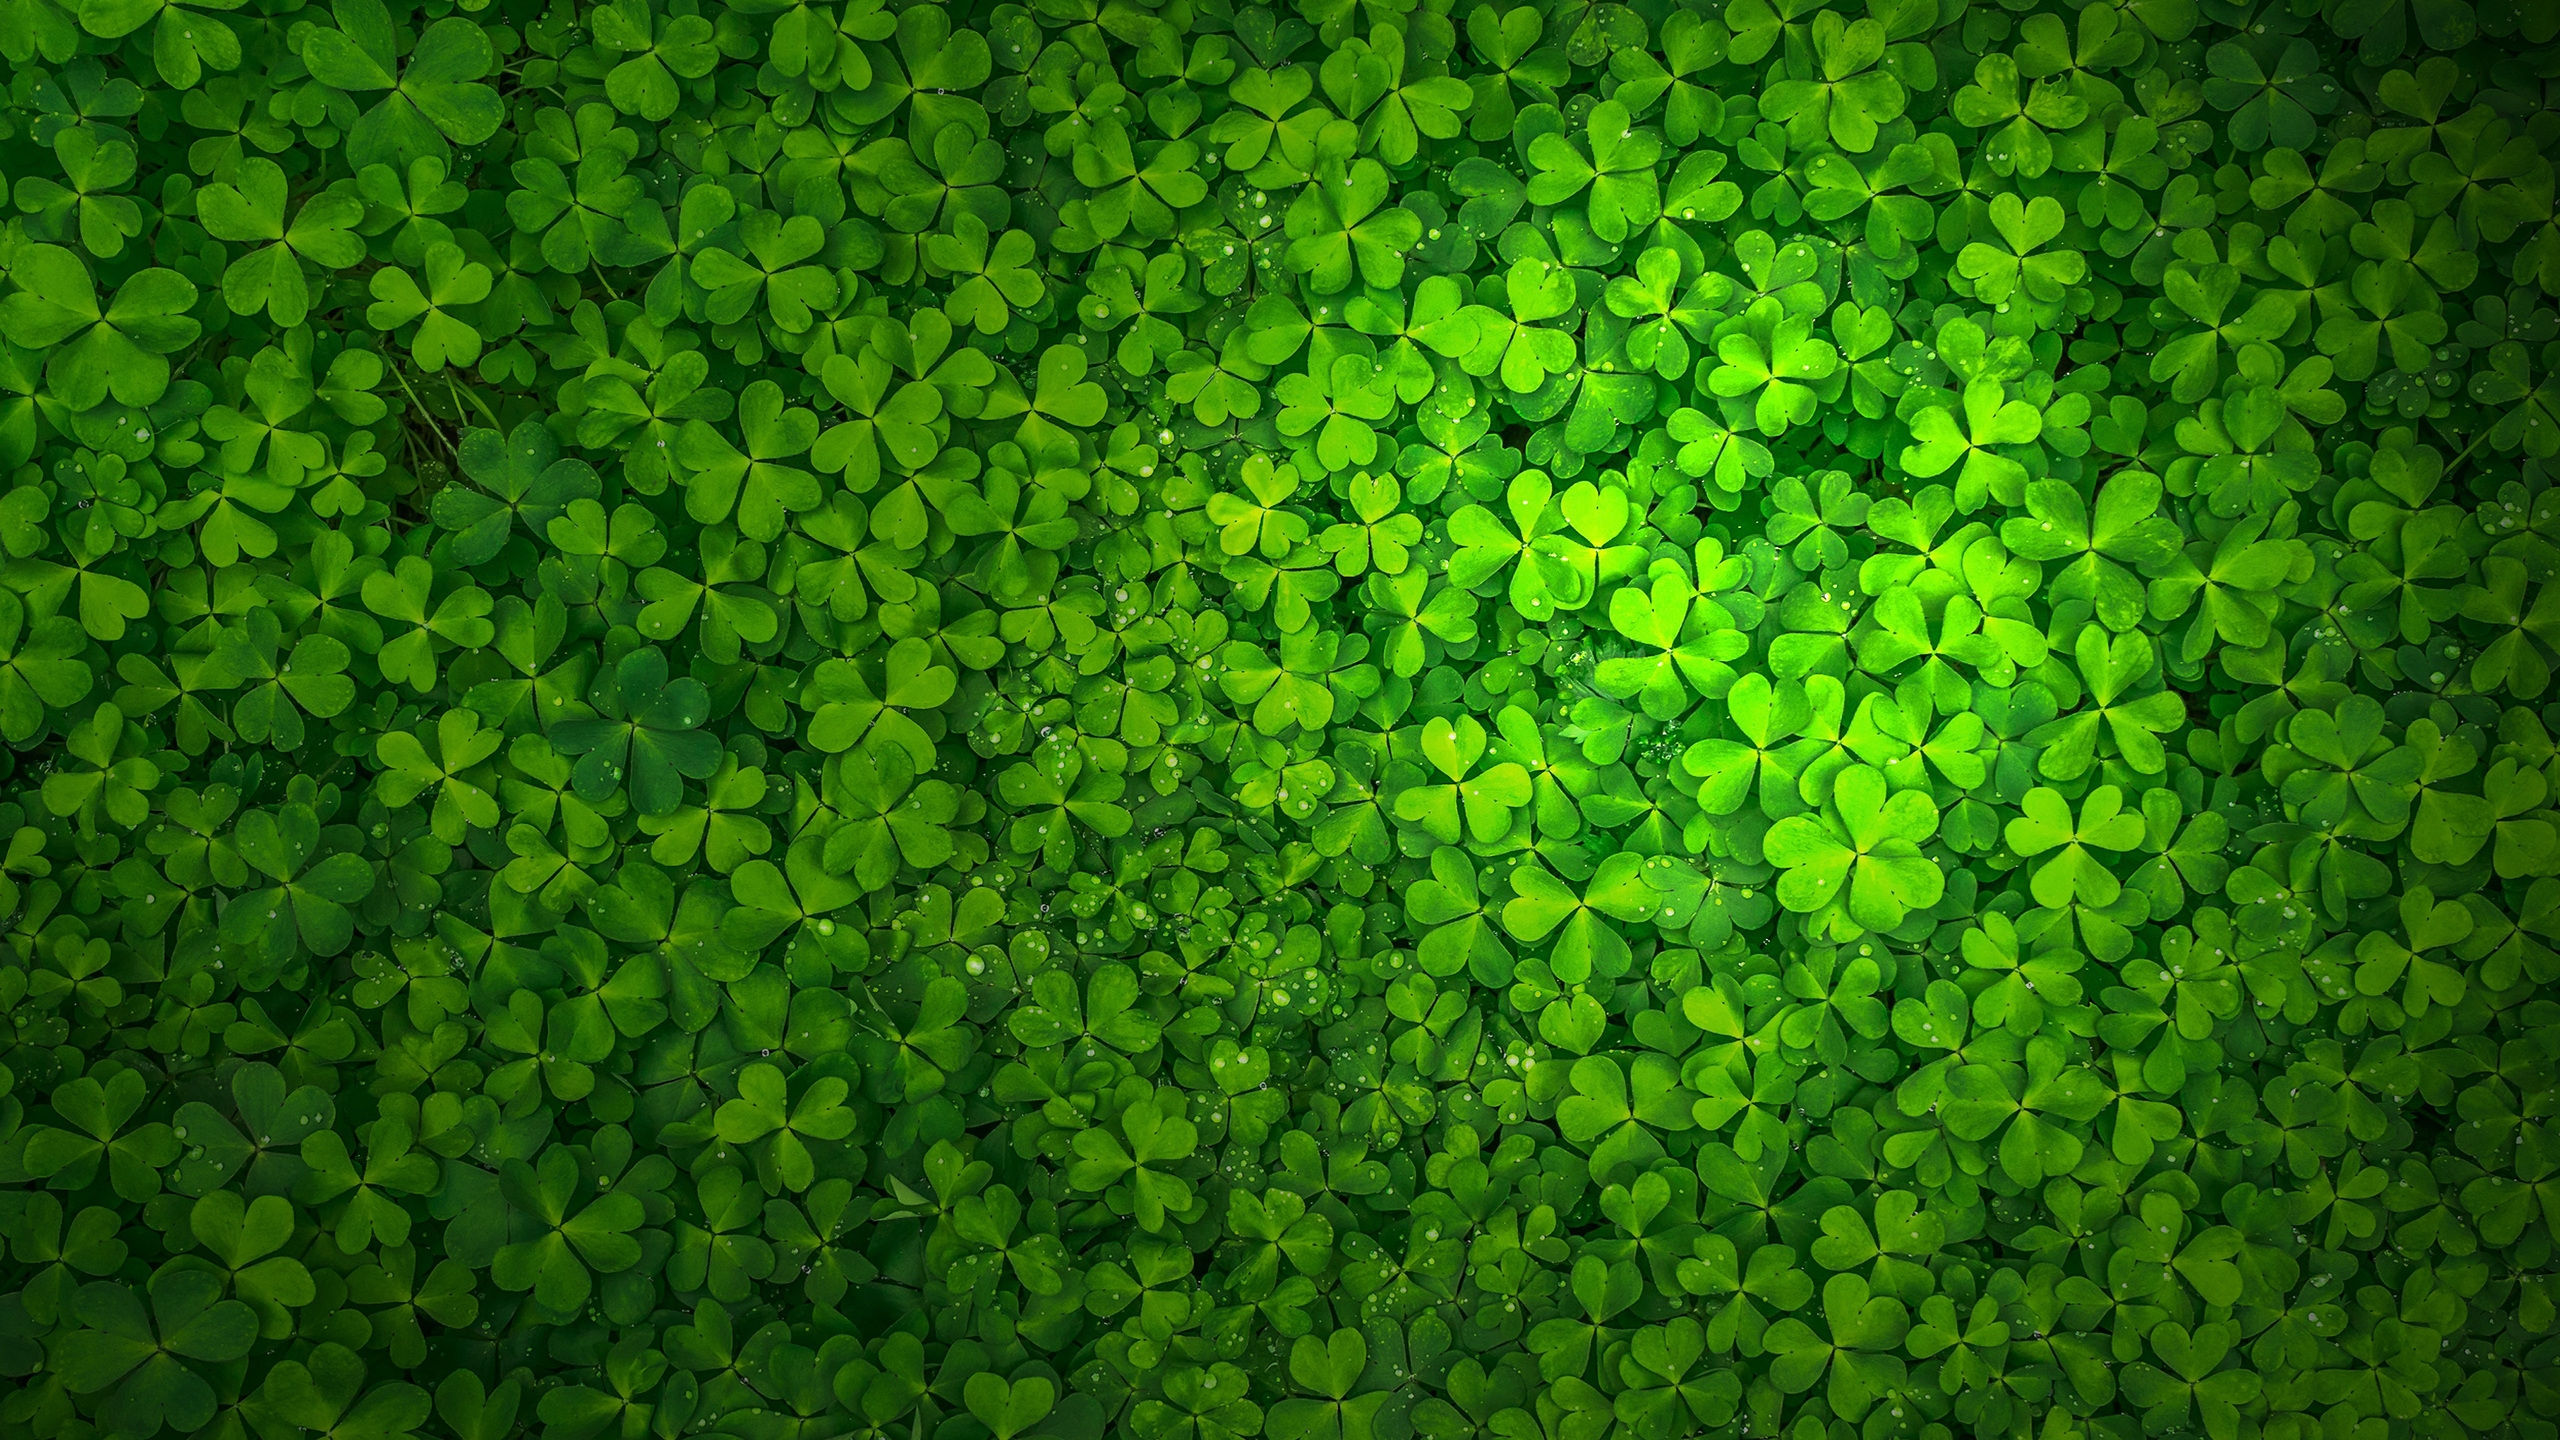 St Patrick's Day for 2560x1440 HDTV resolution